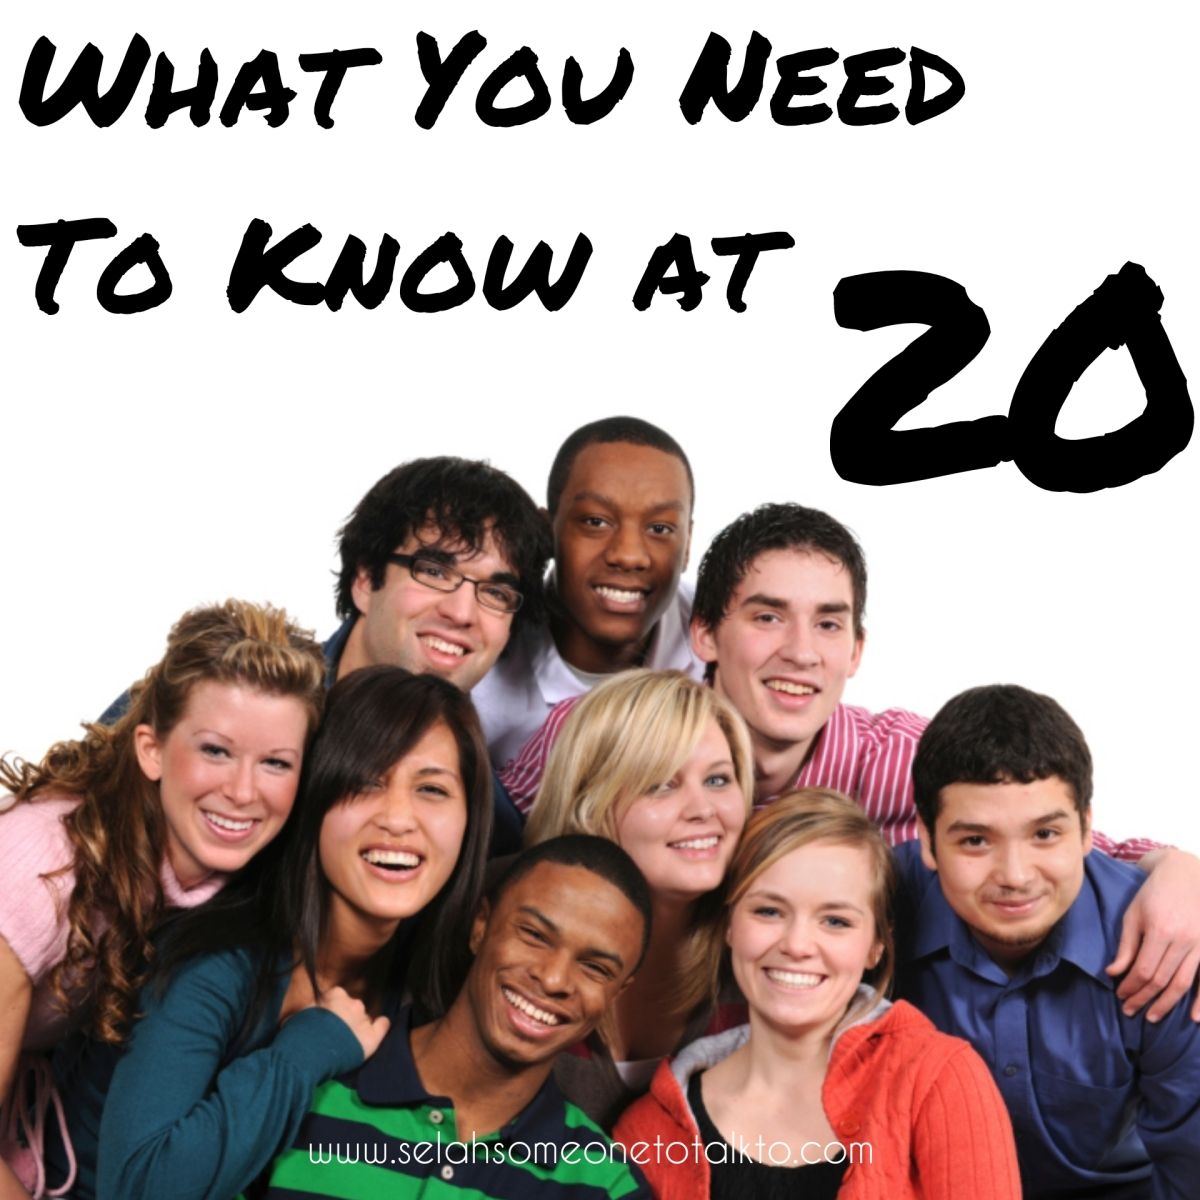 What You Need To Know At Twenty